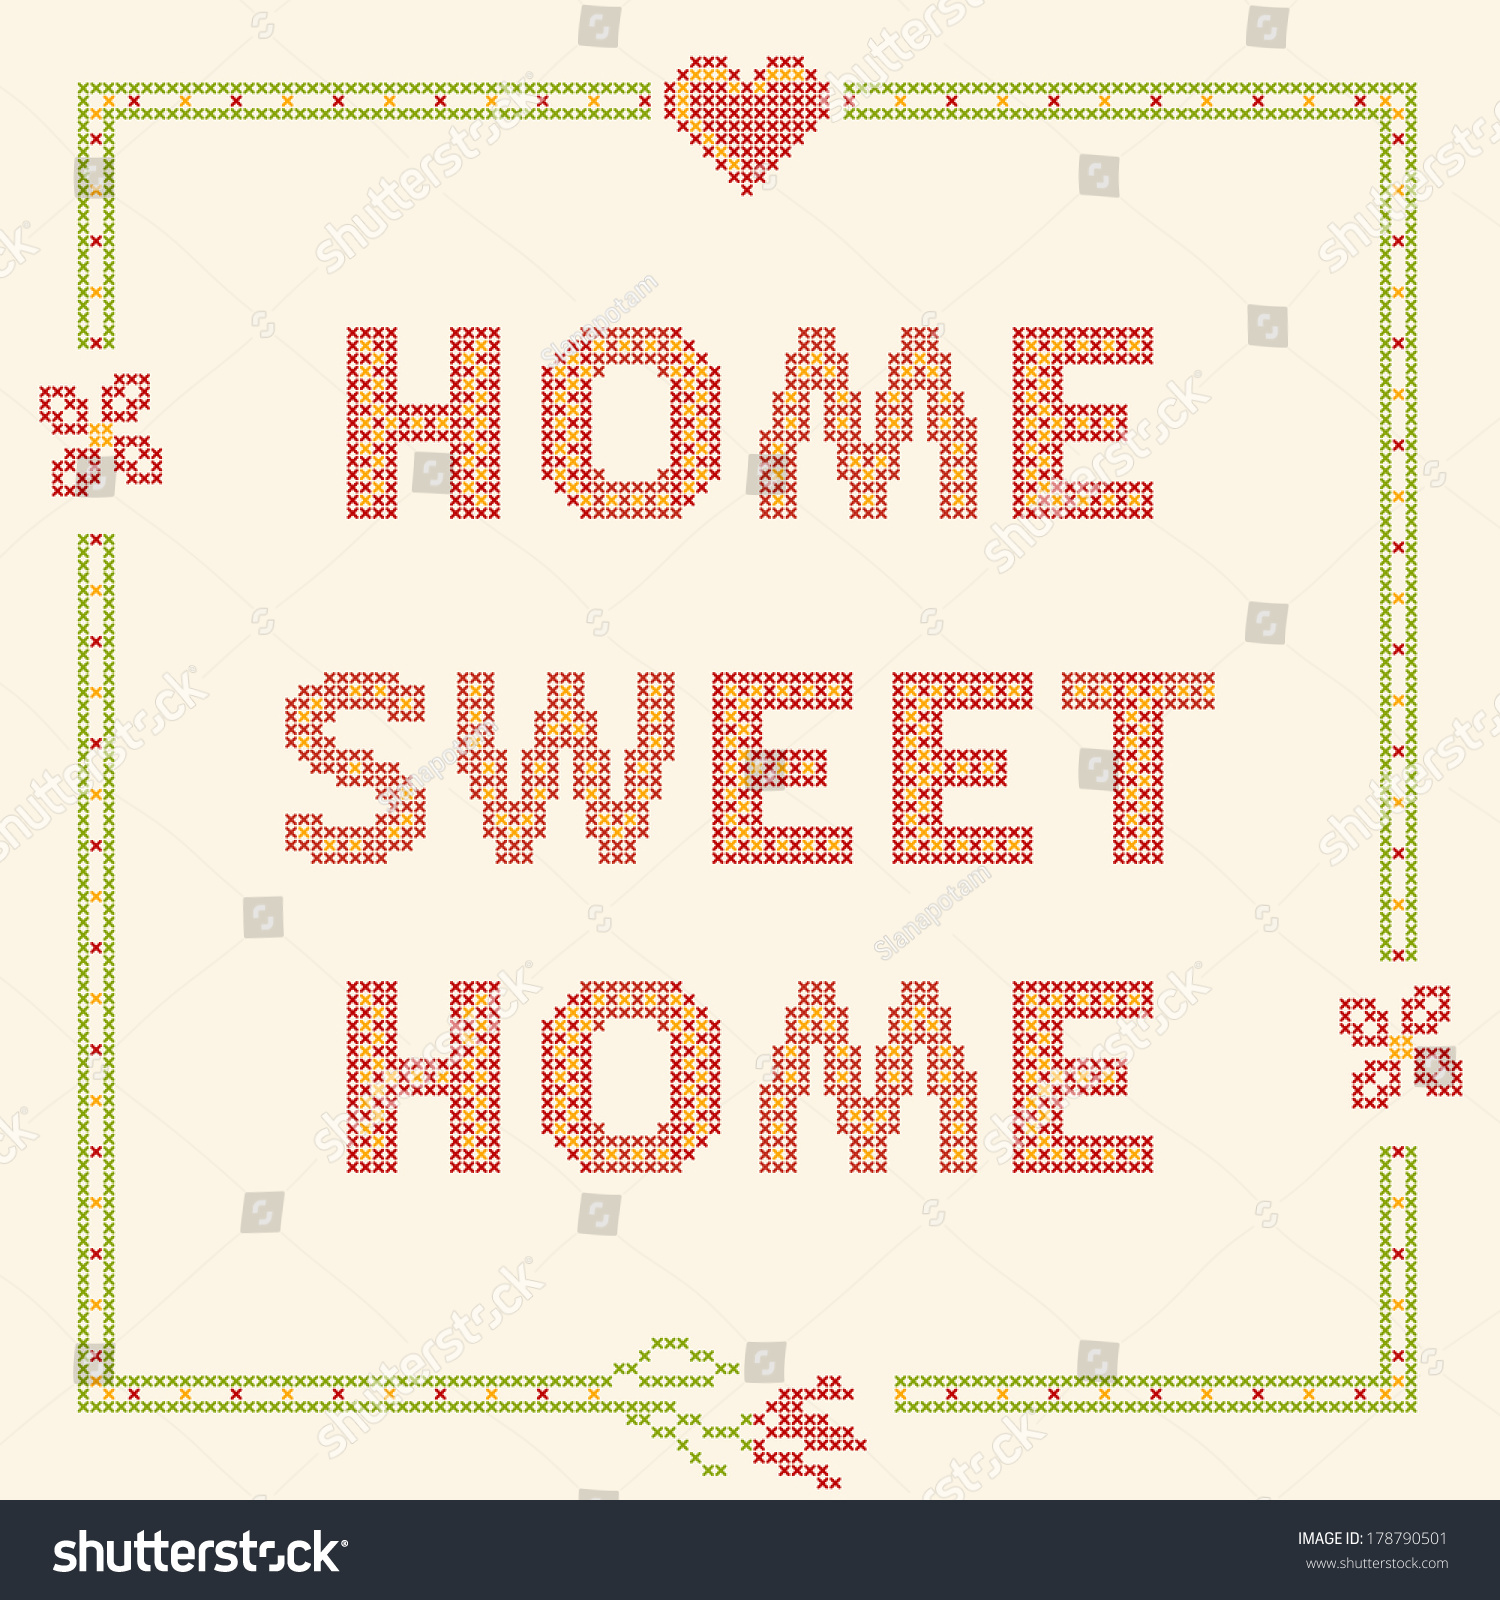 Design elements for home design elements crossstitch embroidery home sweet stock - Home design elements ...